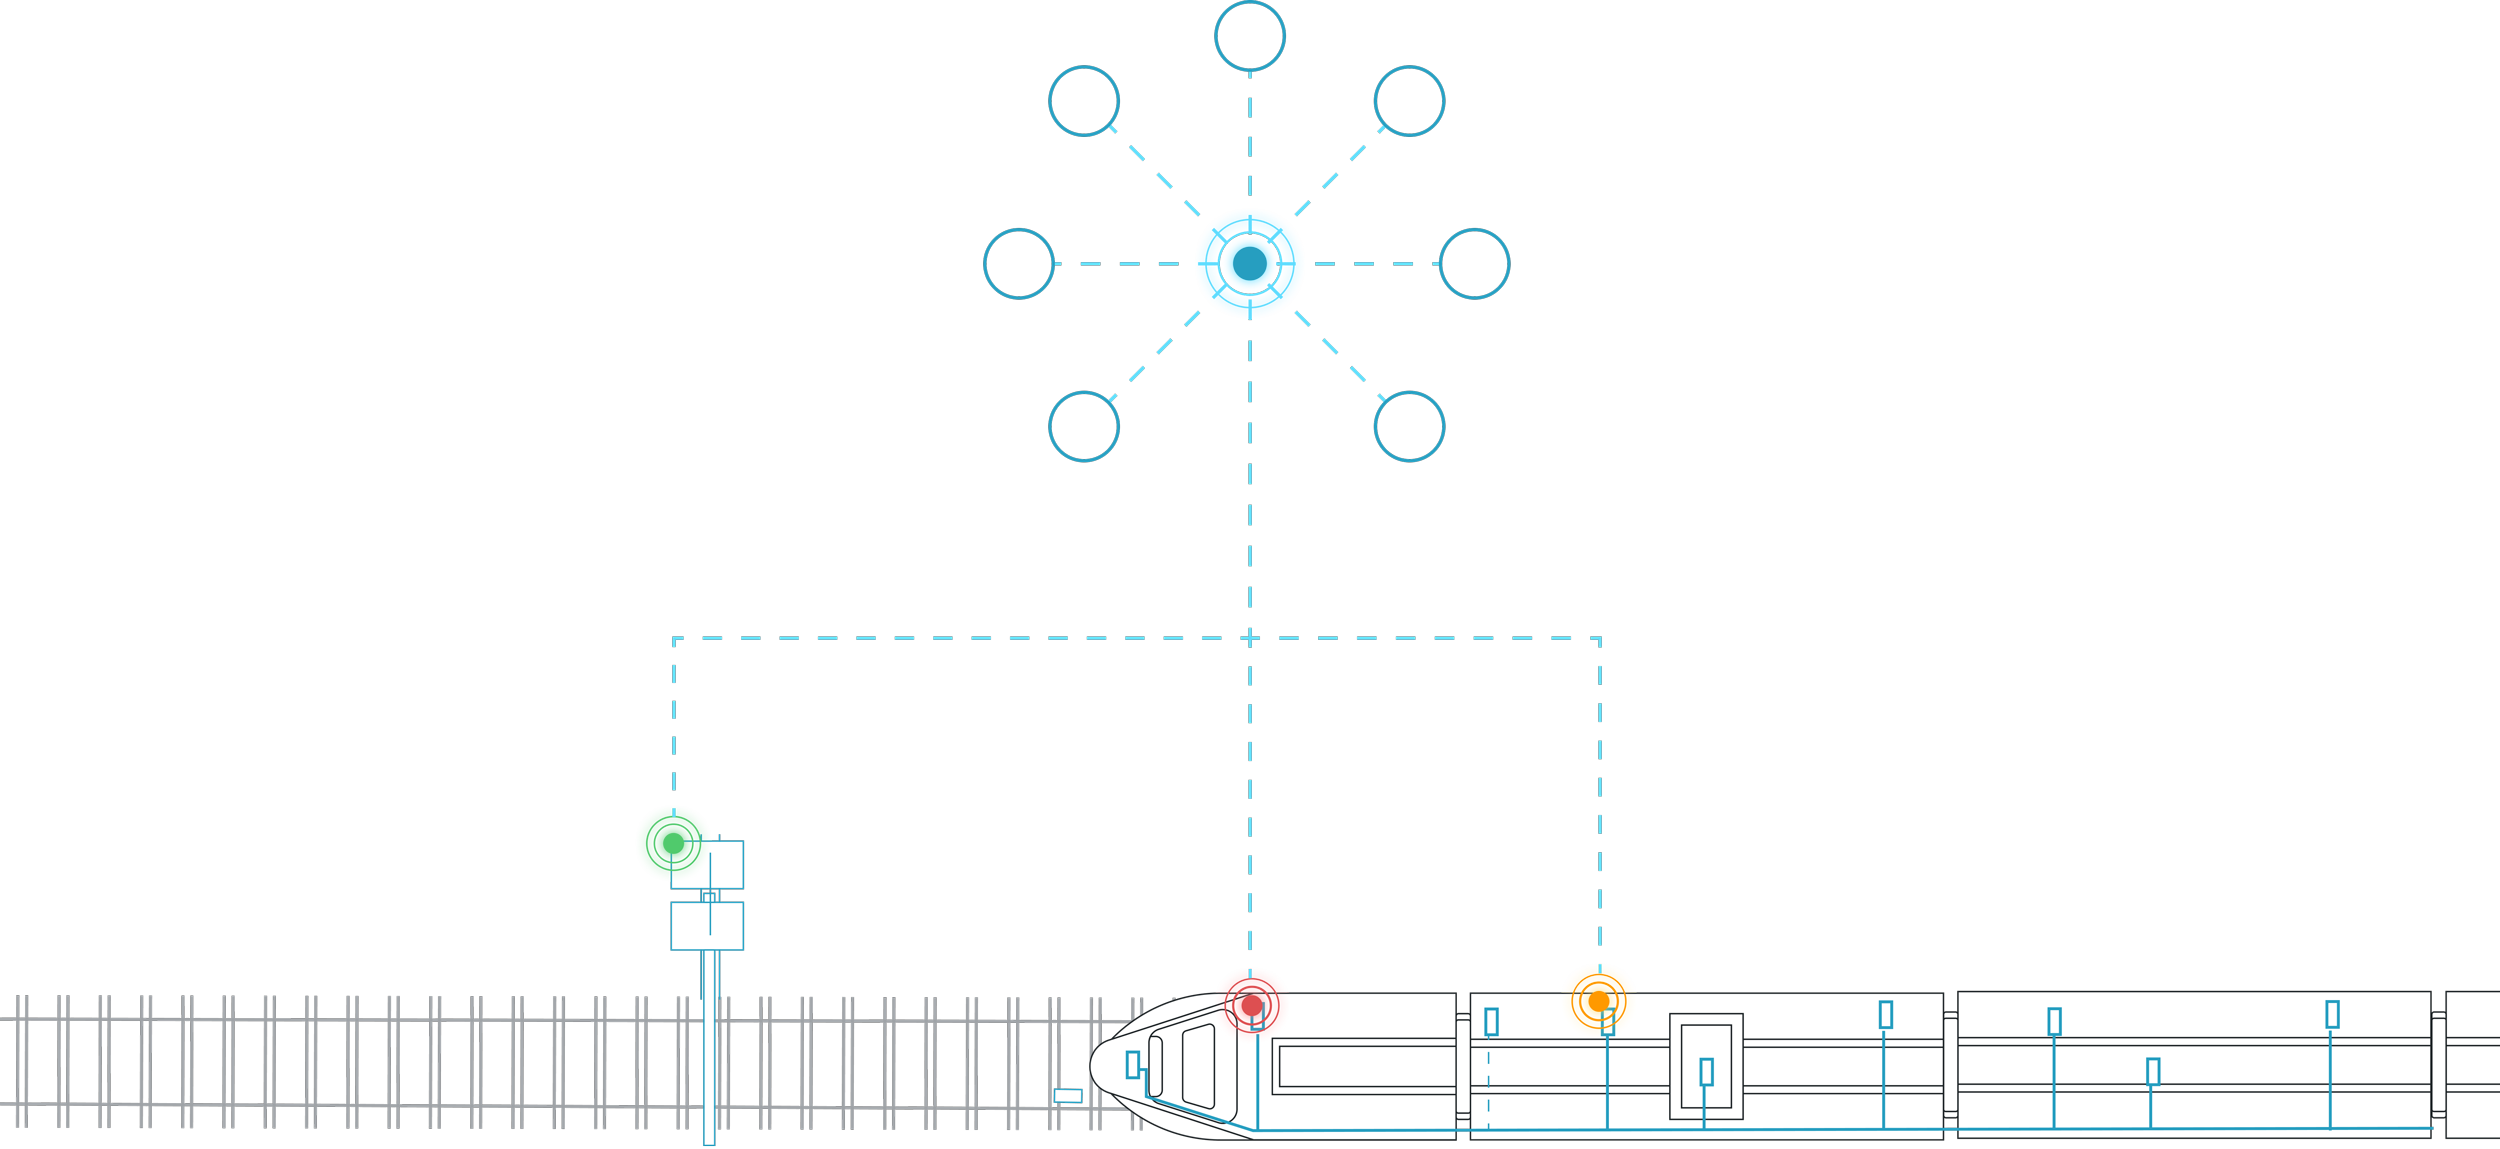 Aerial map of train and cell tower with alerts shown on the locomotive, track switch, wayside bungalow, and gate.